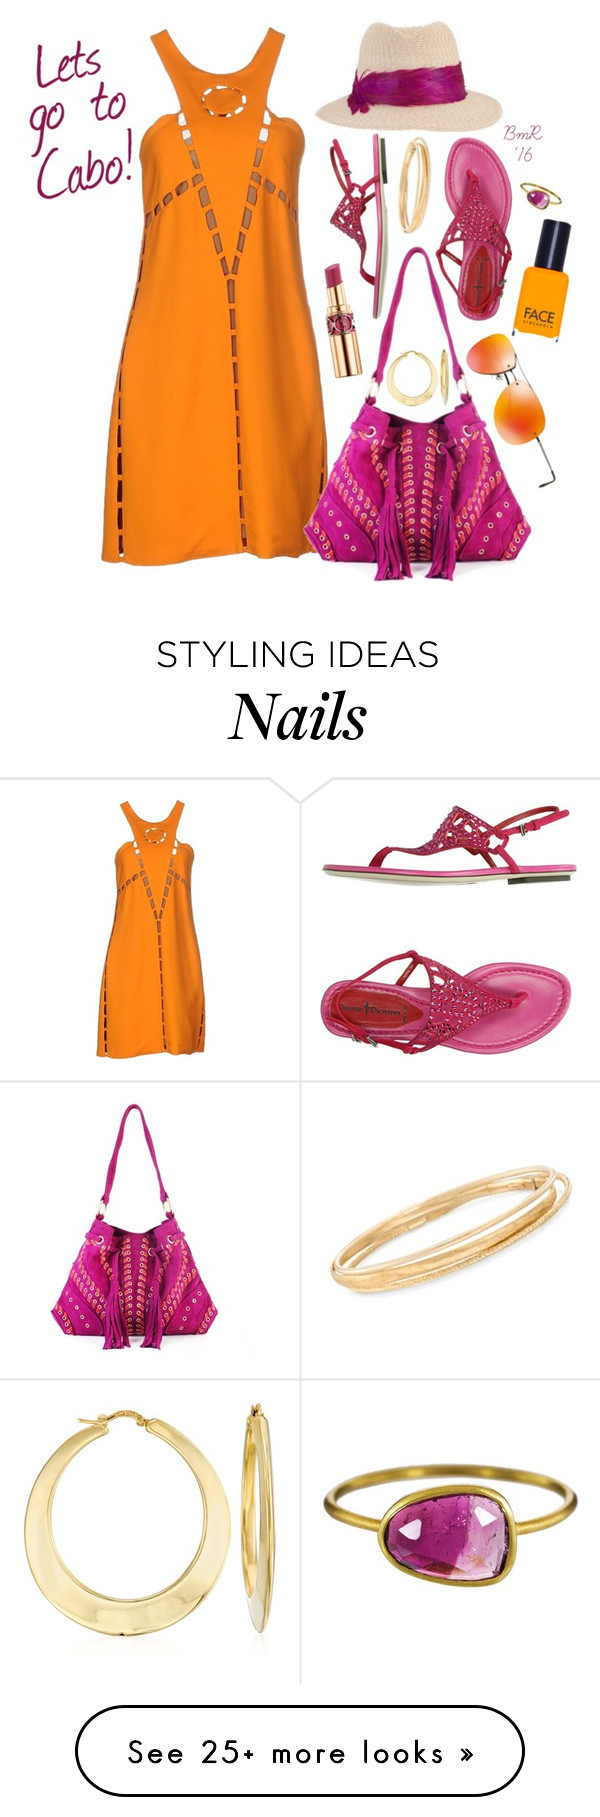 """Vacation Dreams"" by barbmama on Polyvore featuring Cesare Paciotti, Emilio Pucci, Eugenia Kim, Prada Sport, FACE Stockholm, Yves Saint Laurent, Ross-Simons, Solow, women's clothing and women"